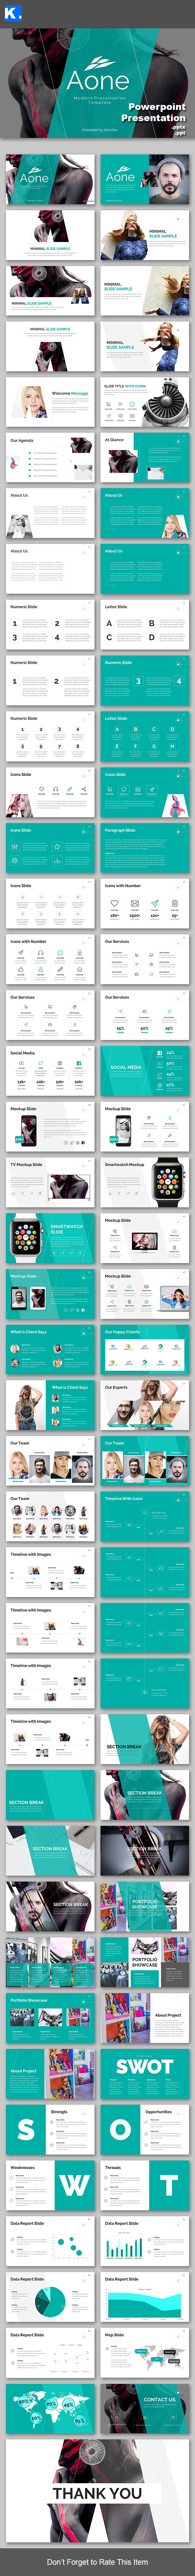 Aone - Powerpoint Presentation Template - Creative PowerPoint Templates